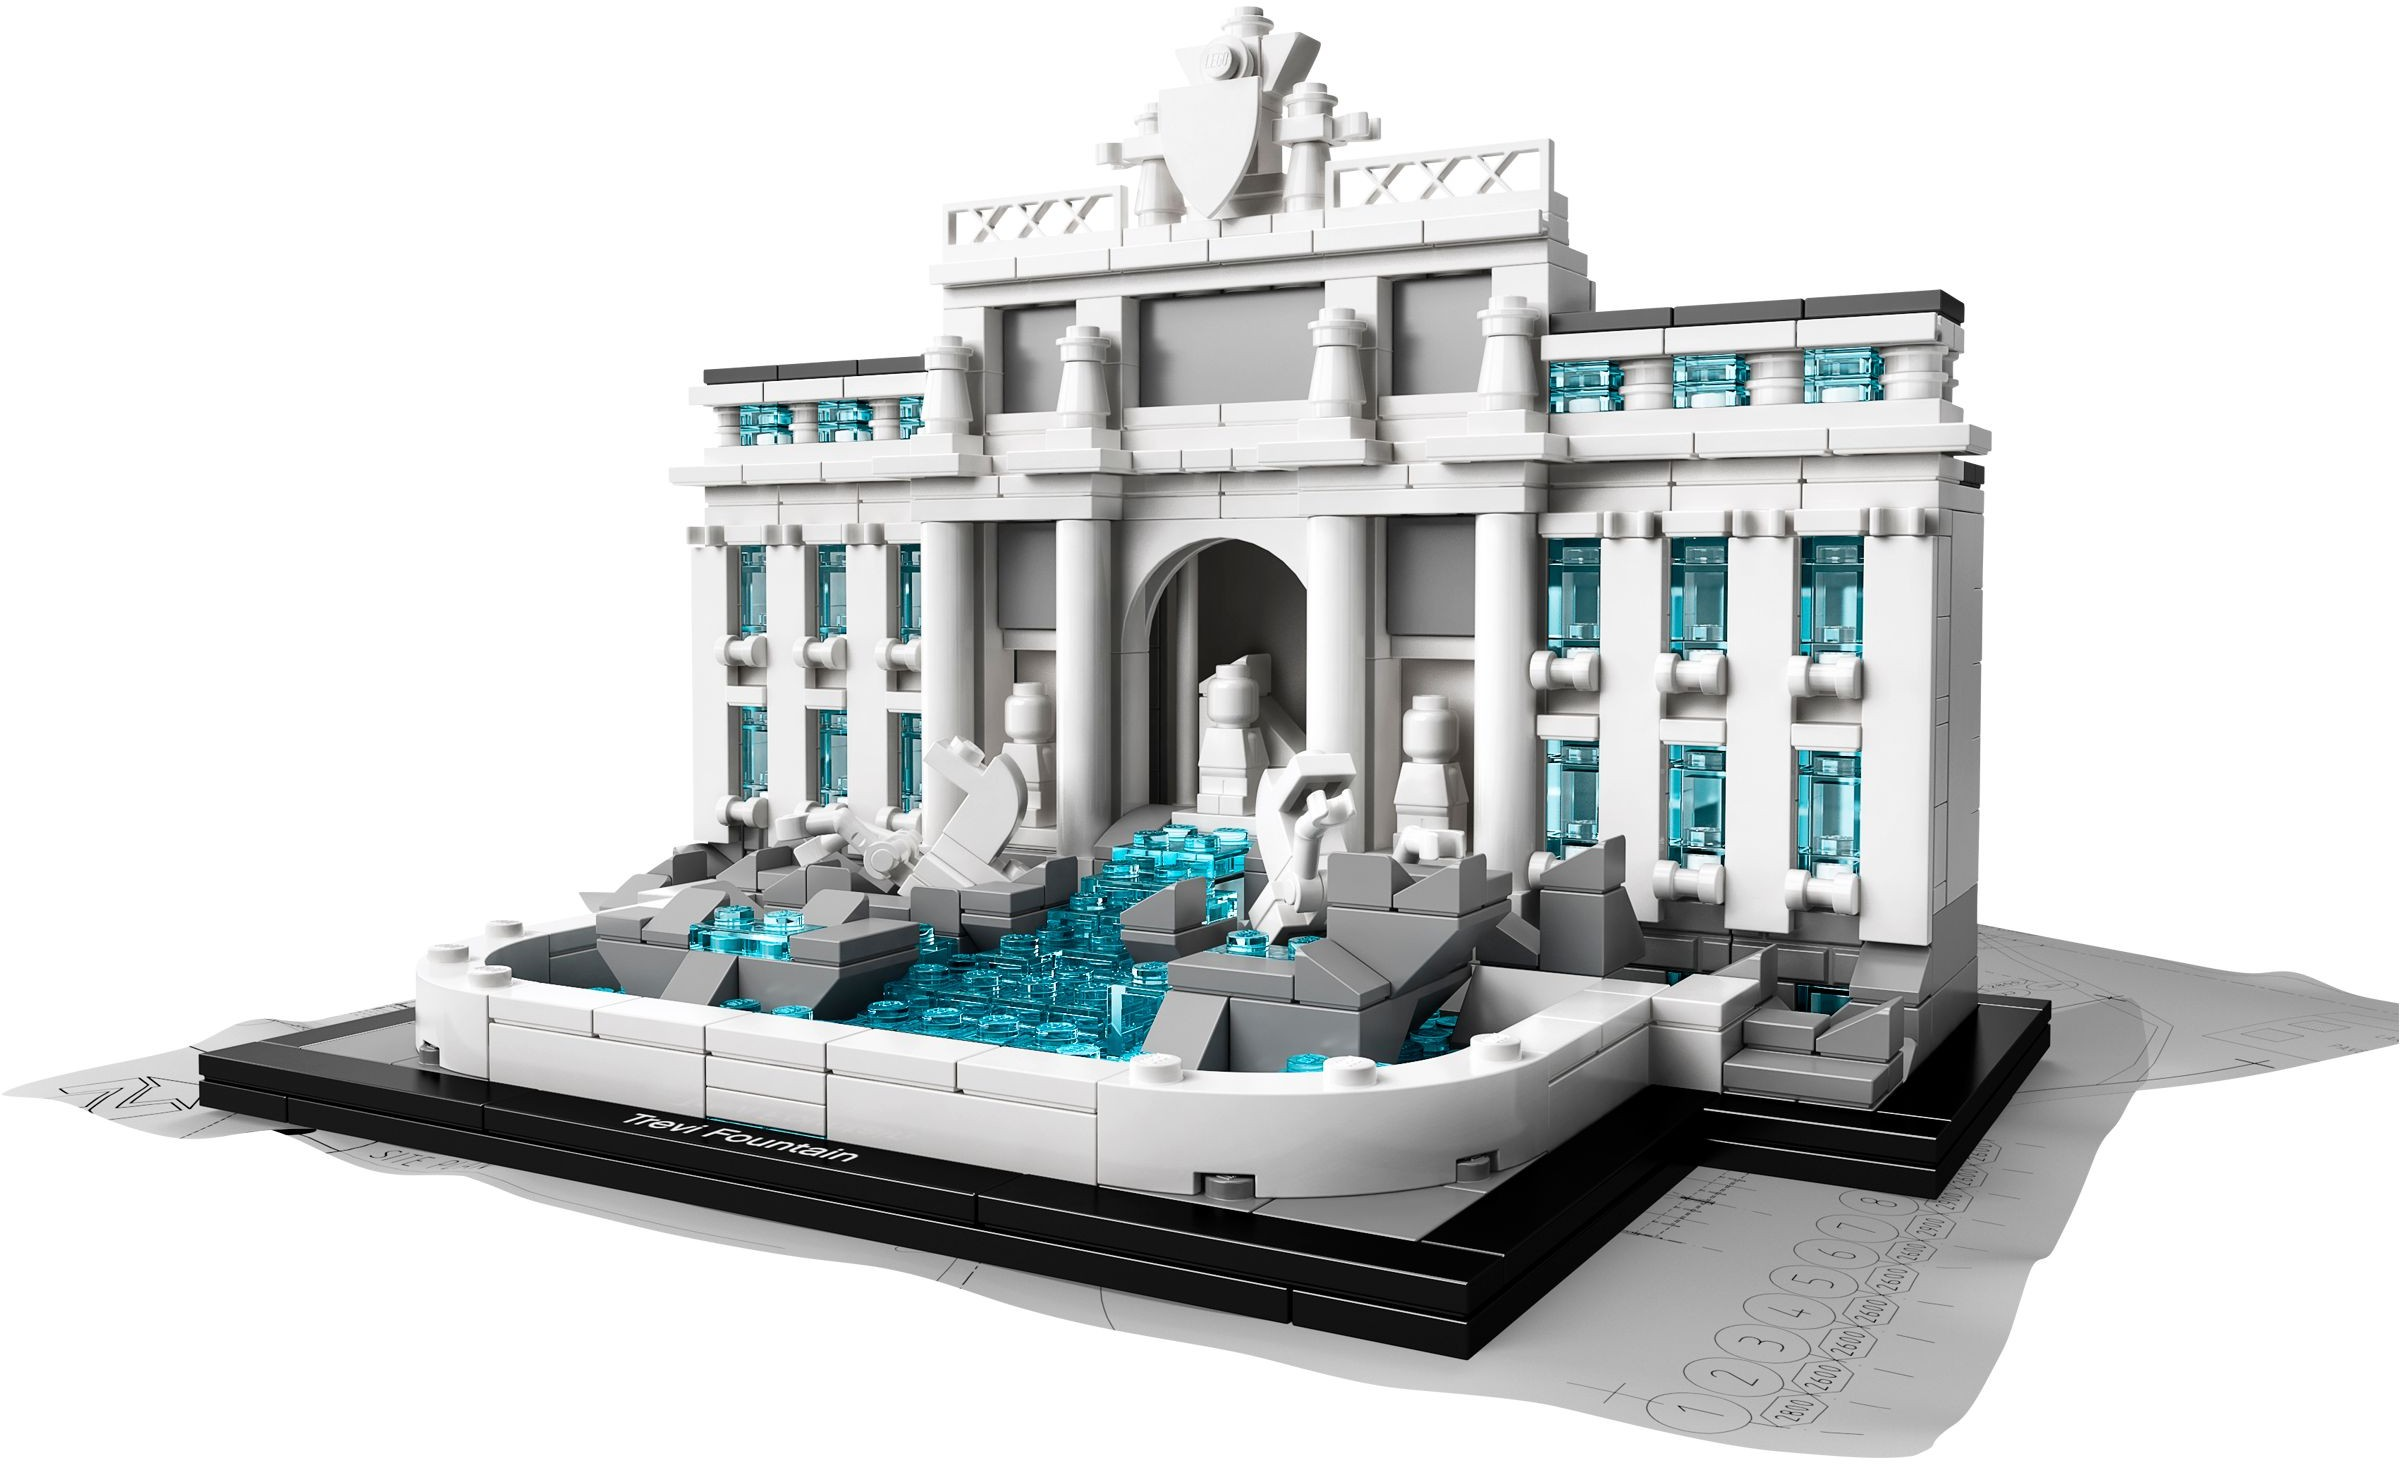 lego architecture 21020 pas cher la fontaine de trevi rome italie. Black Bedroom Furniture Sets. Home Design Ideas